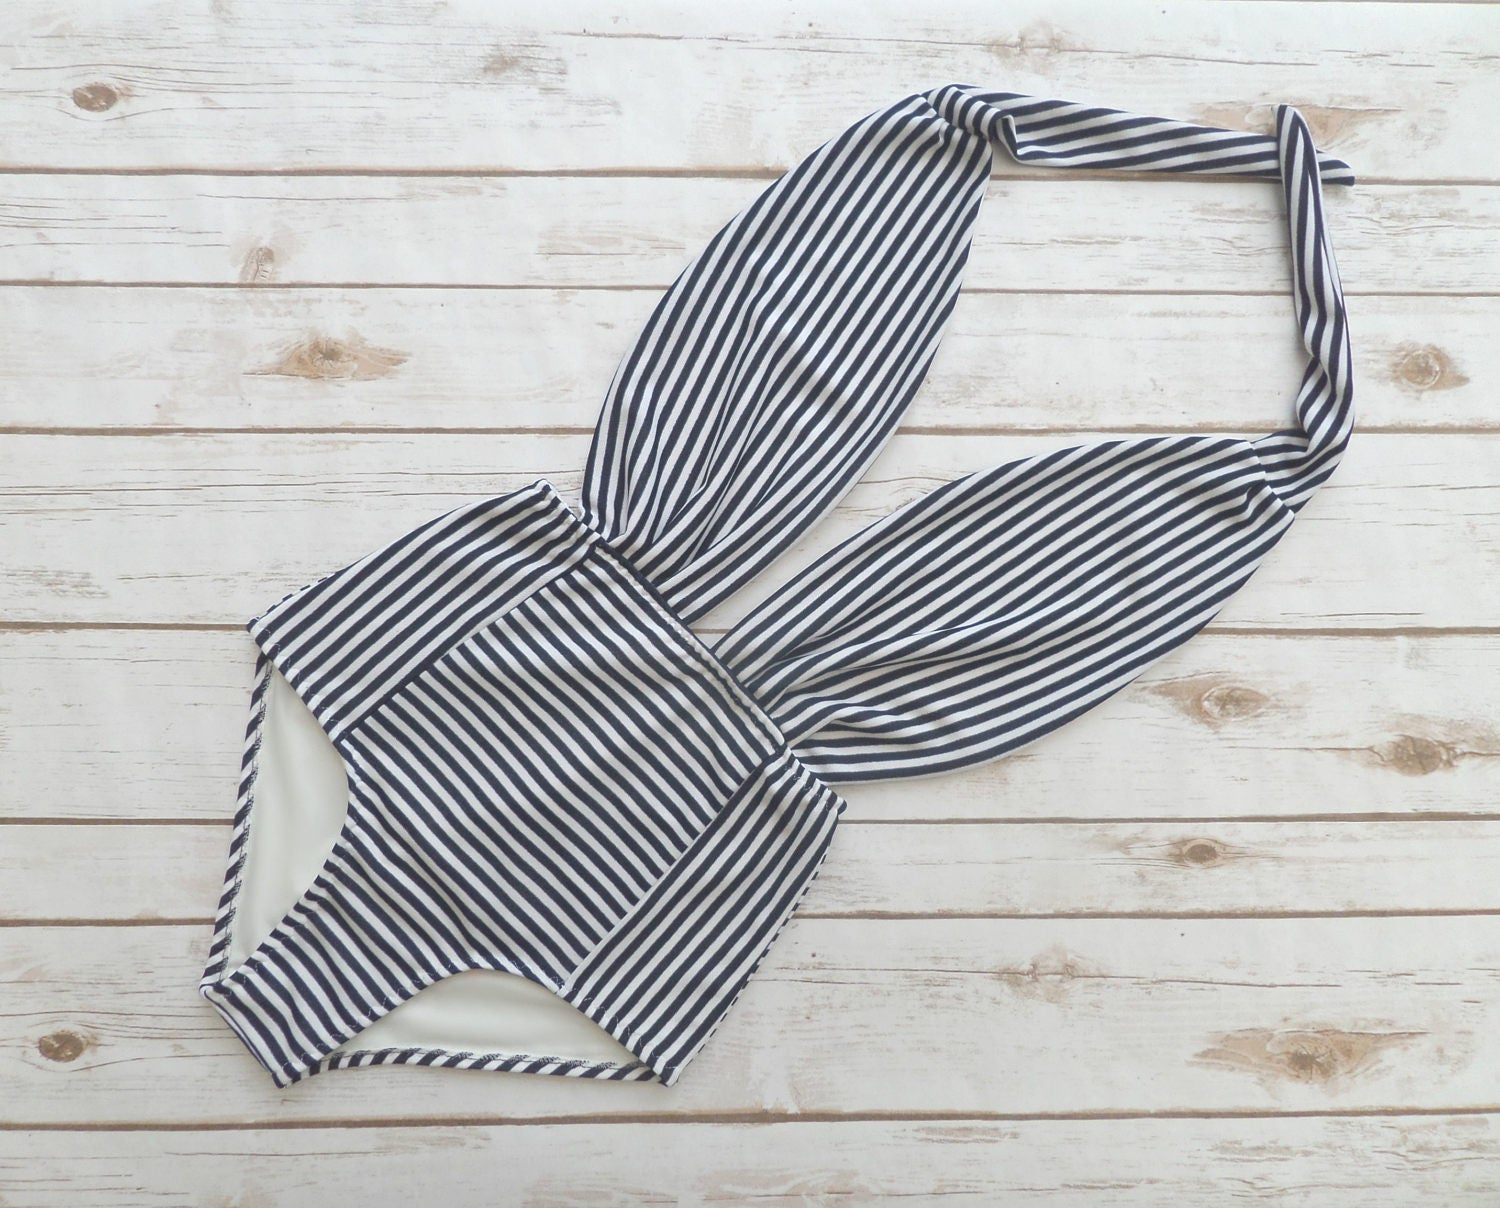 Swimsuit High Waisted Vintage Style One Piece Pinup Bathing Suit  Nautical Sailor Style Navy and White Striped Retro Backless Swimwear